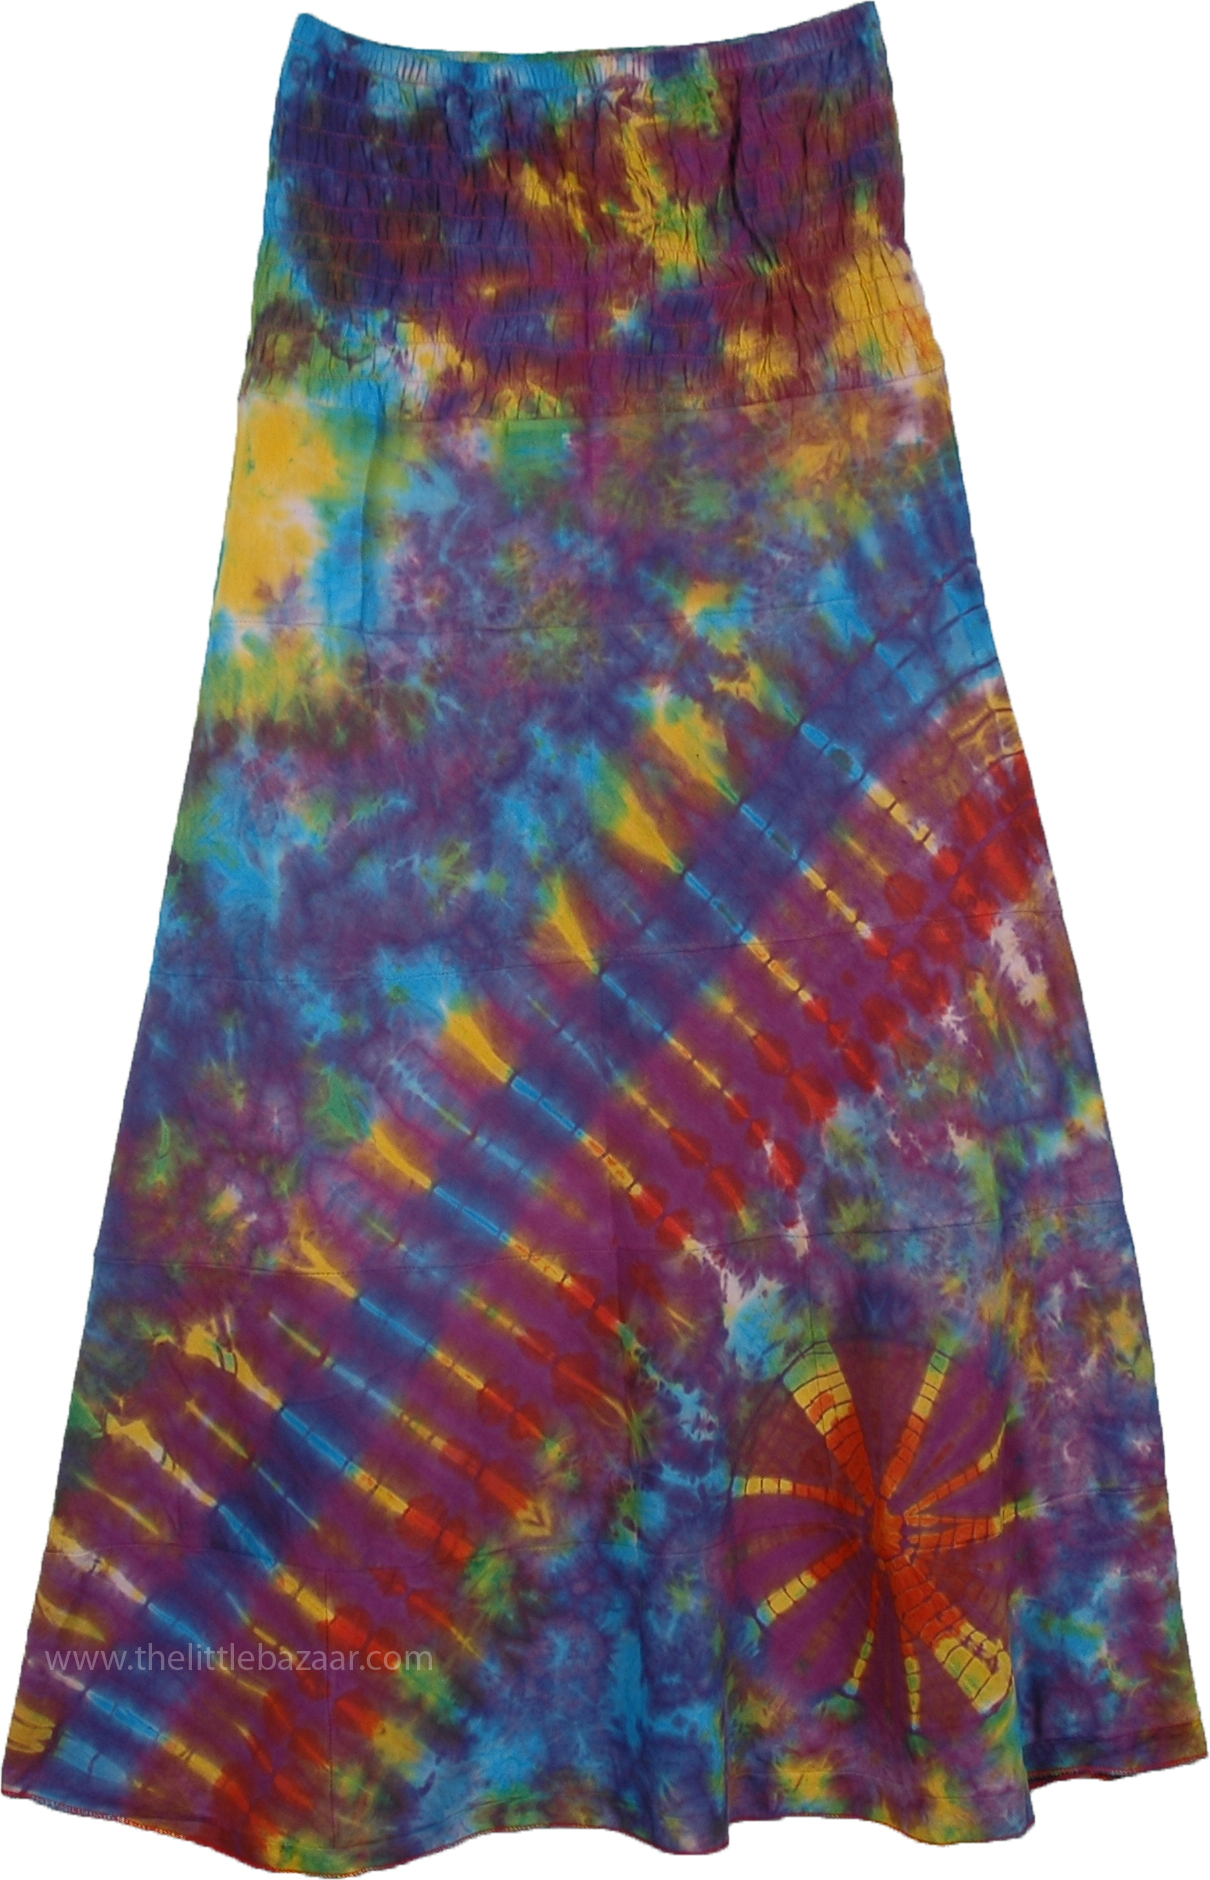 Magical Cosmos Tie Dye Skirt, Across The Galaxy Tie Dye Skirt